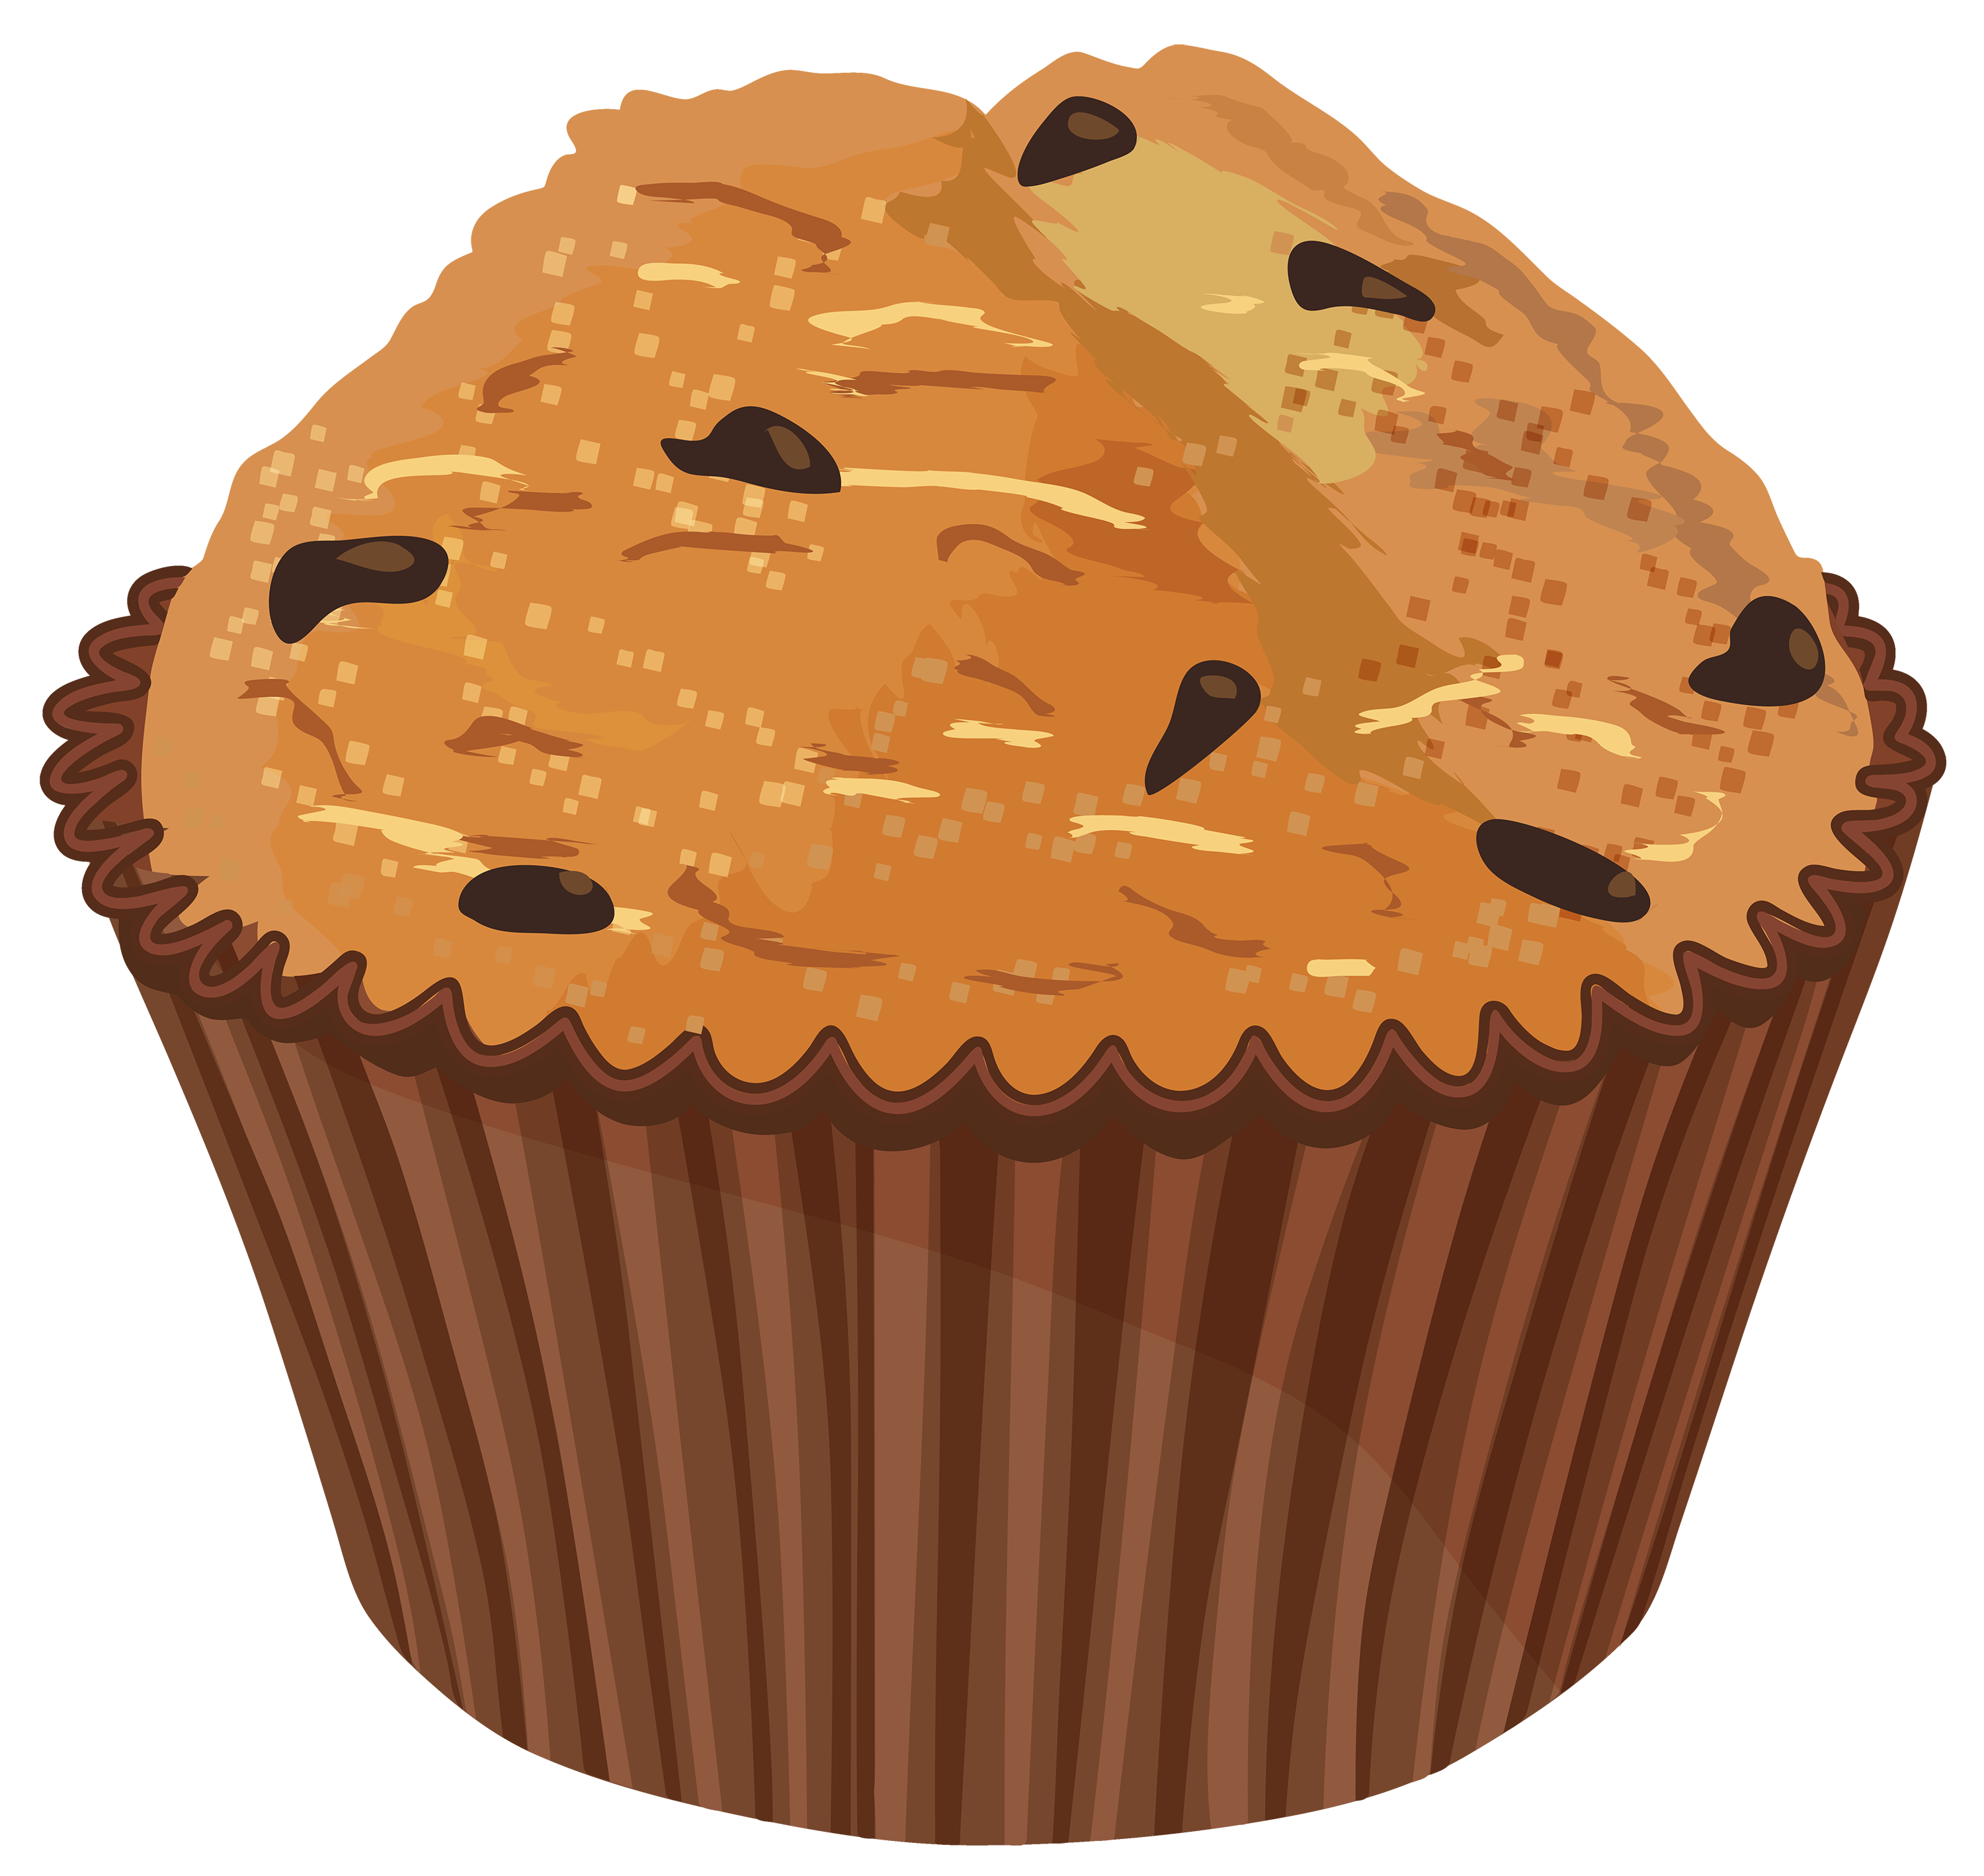 Png best web. Muffin clipart baked goods clip art freeuse